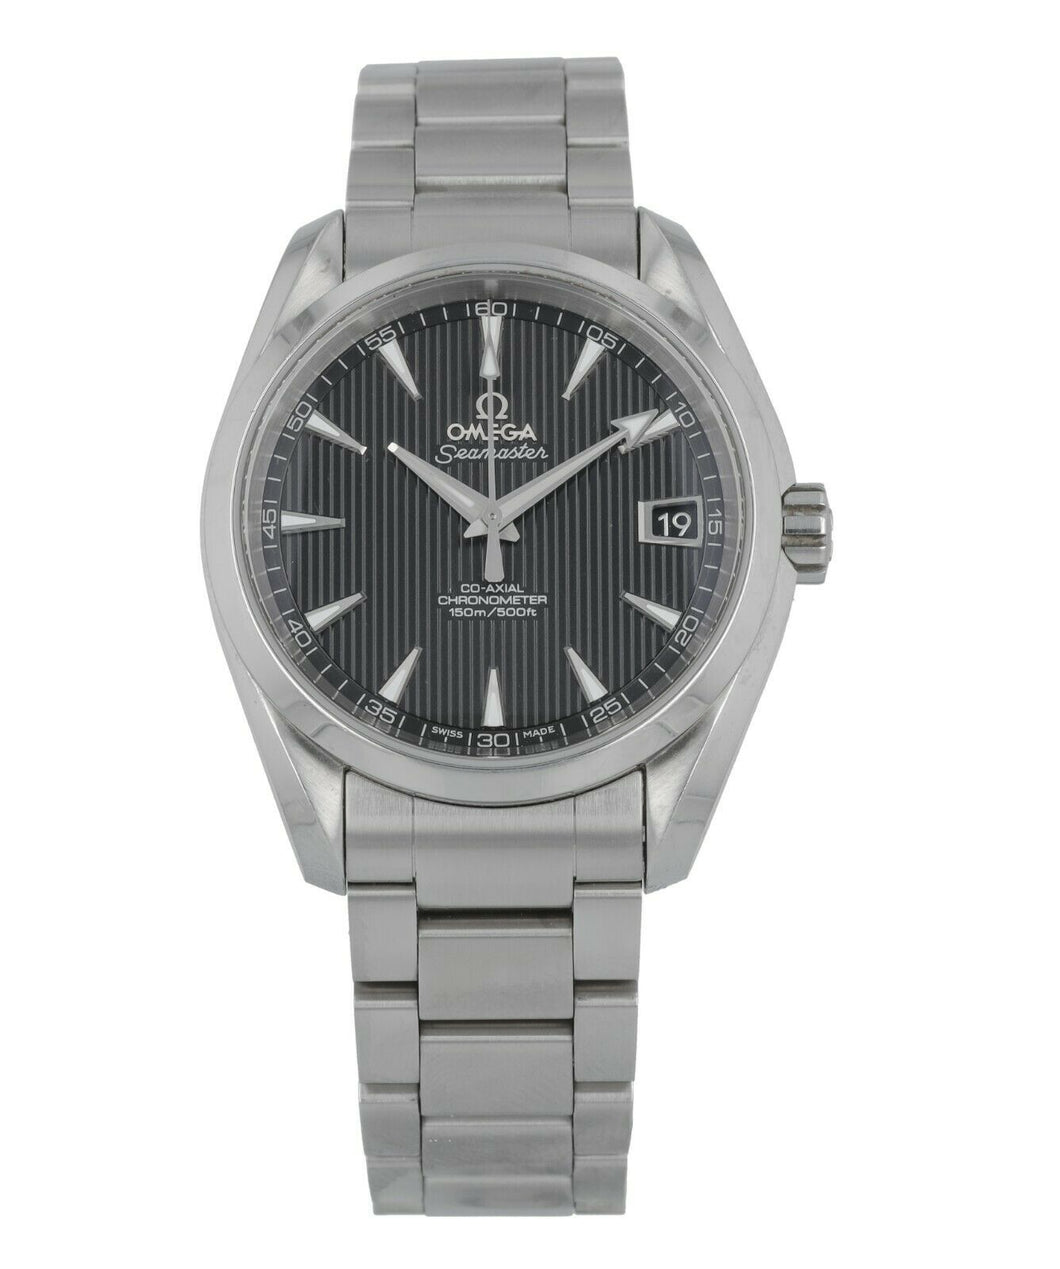 Omega Aqua Terra Automatic Chronometer Men's 38.5mm Watch 231.13.39.21.01.001